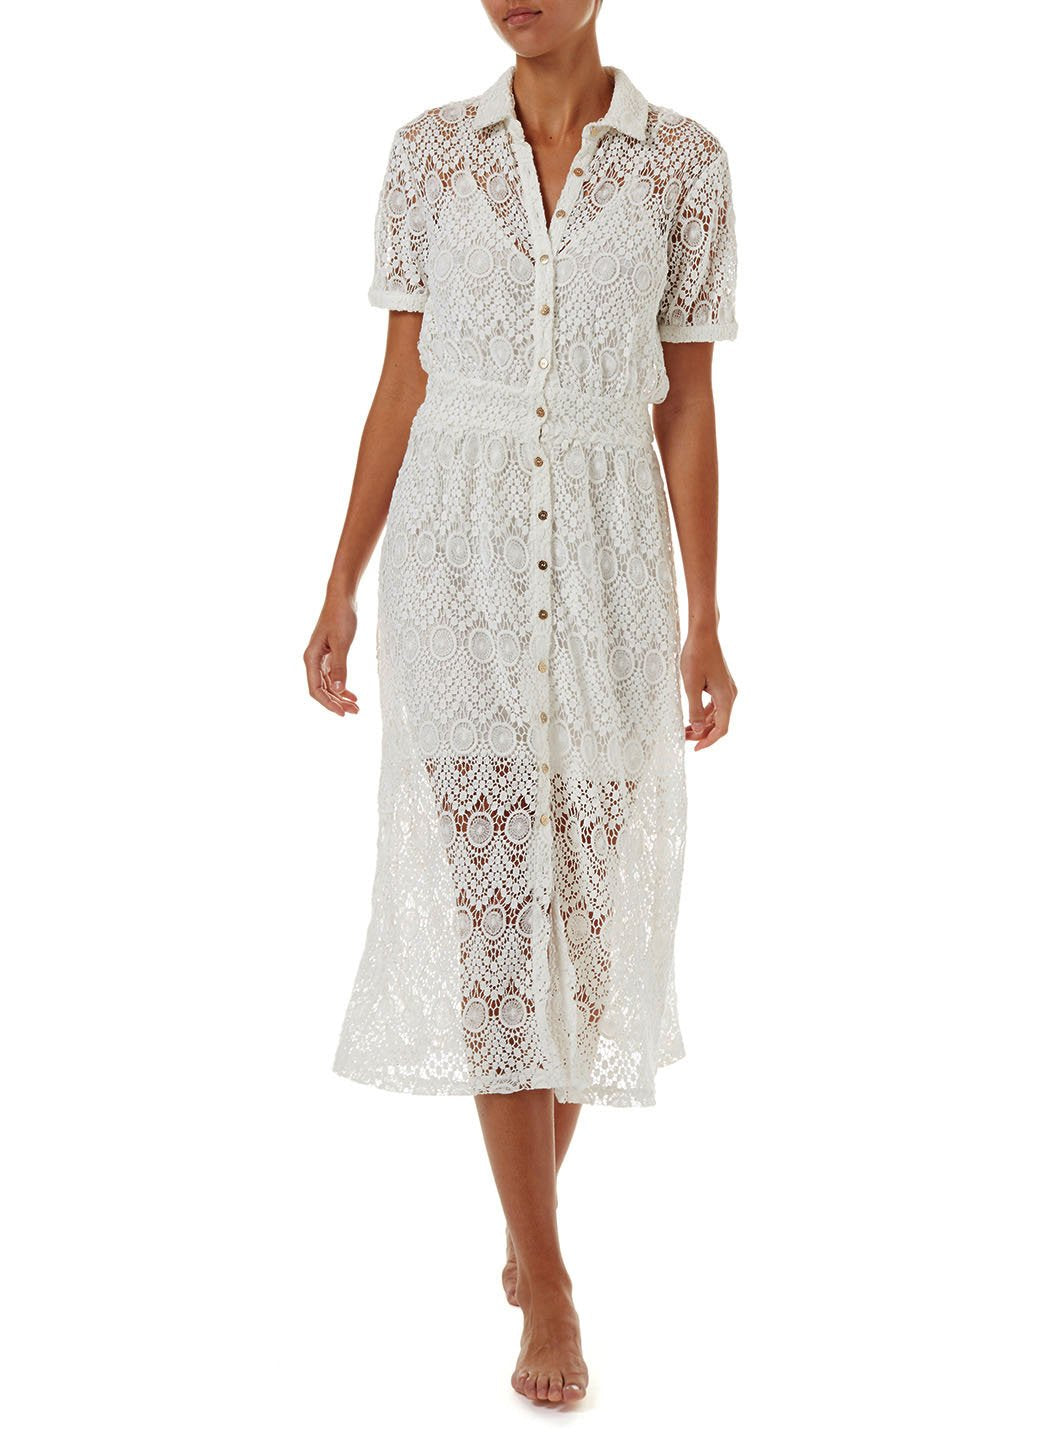 april white lace midi button down shirt dress 2019 F